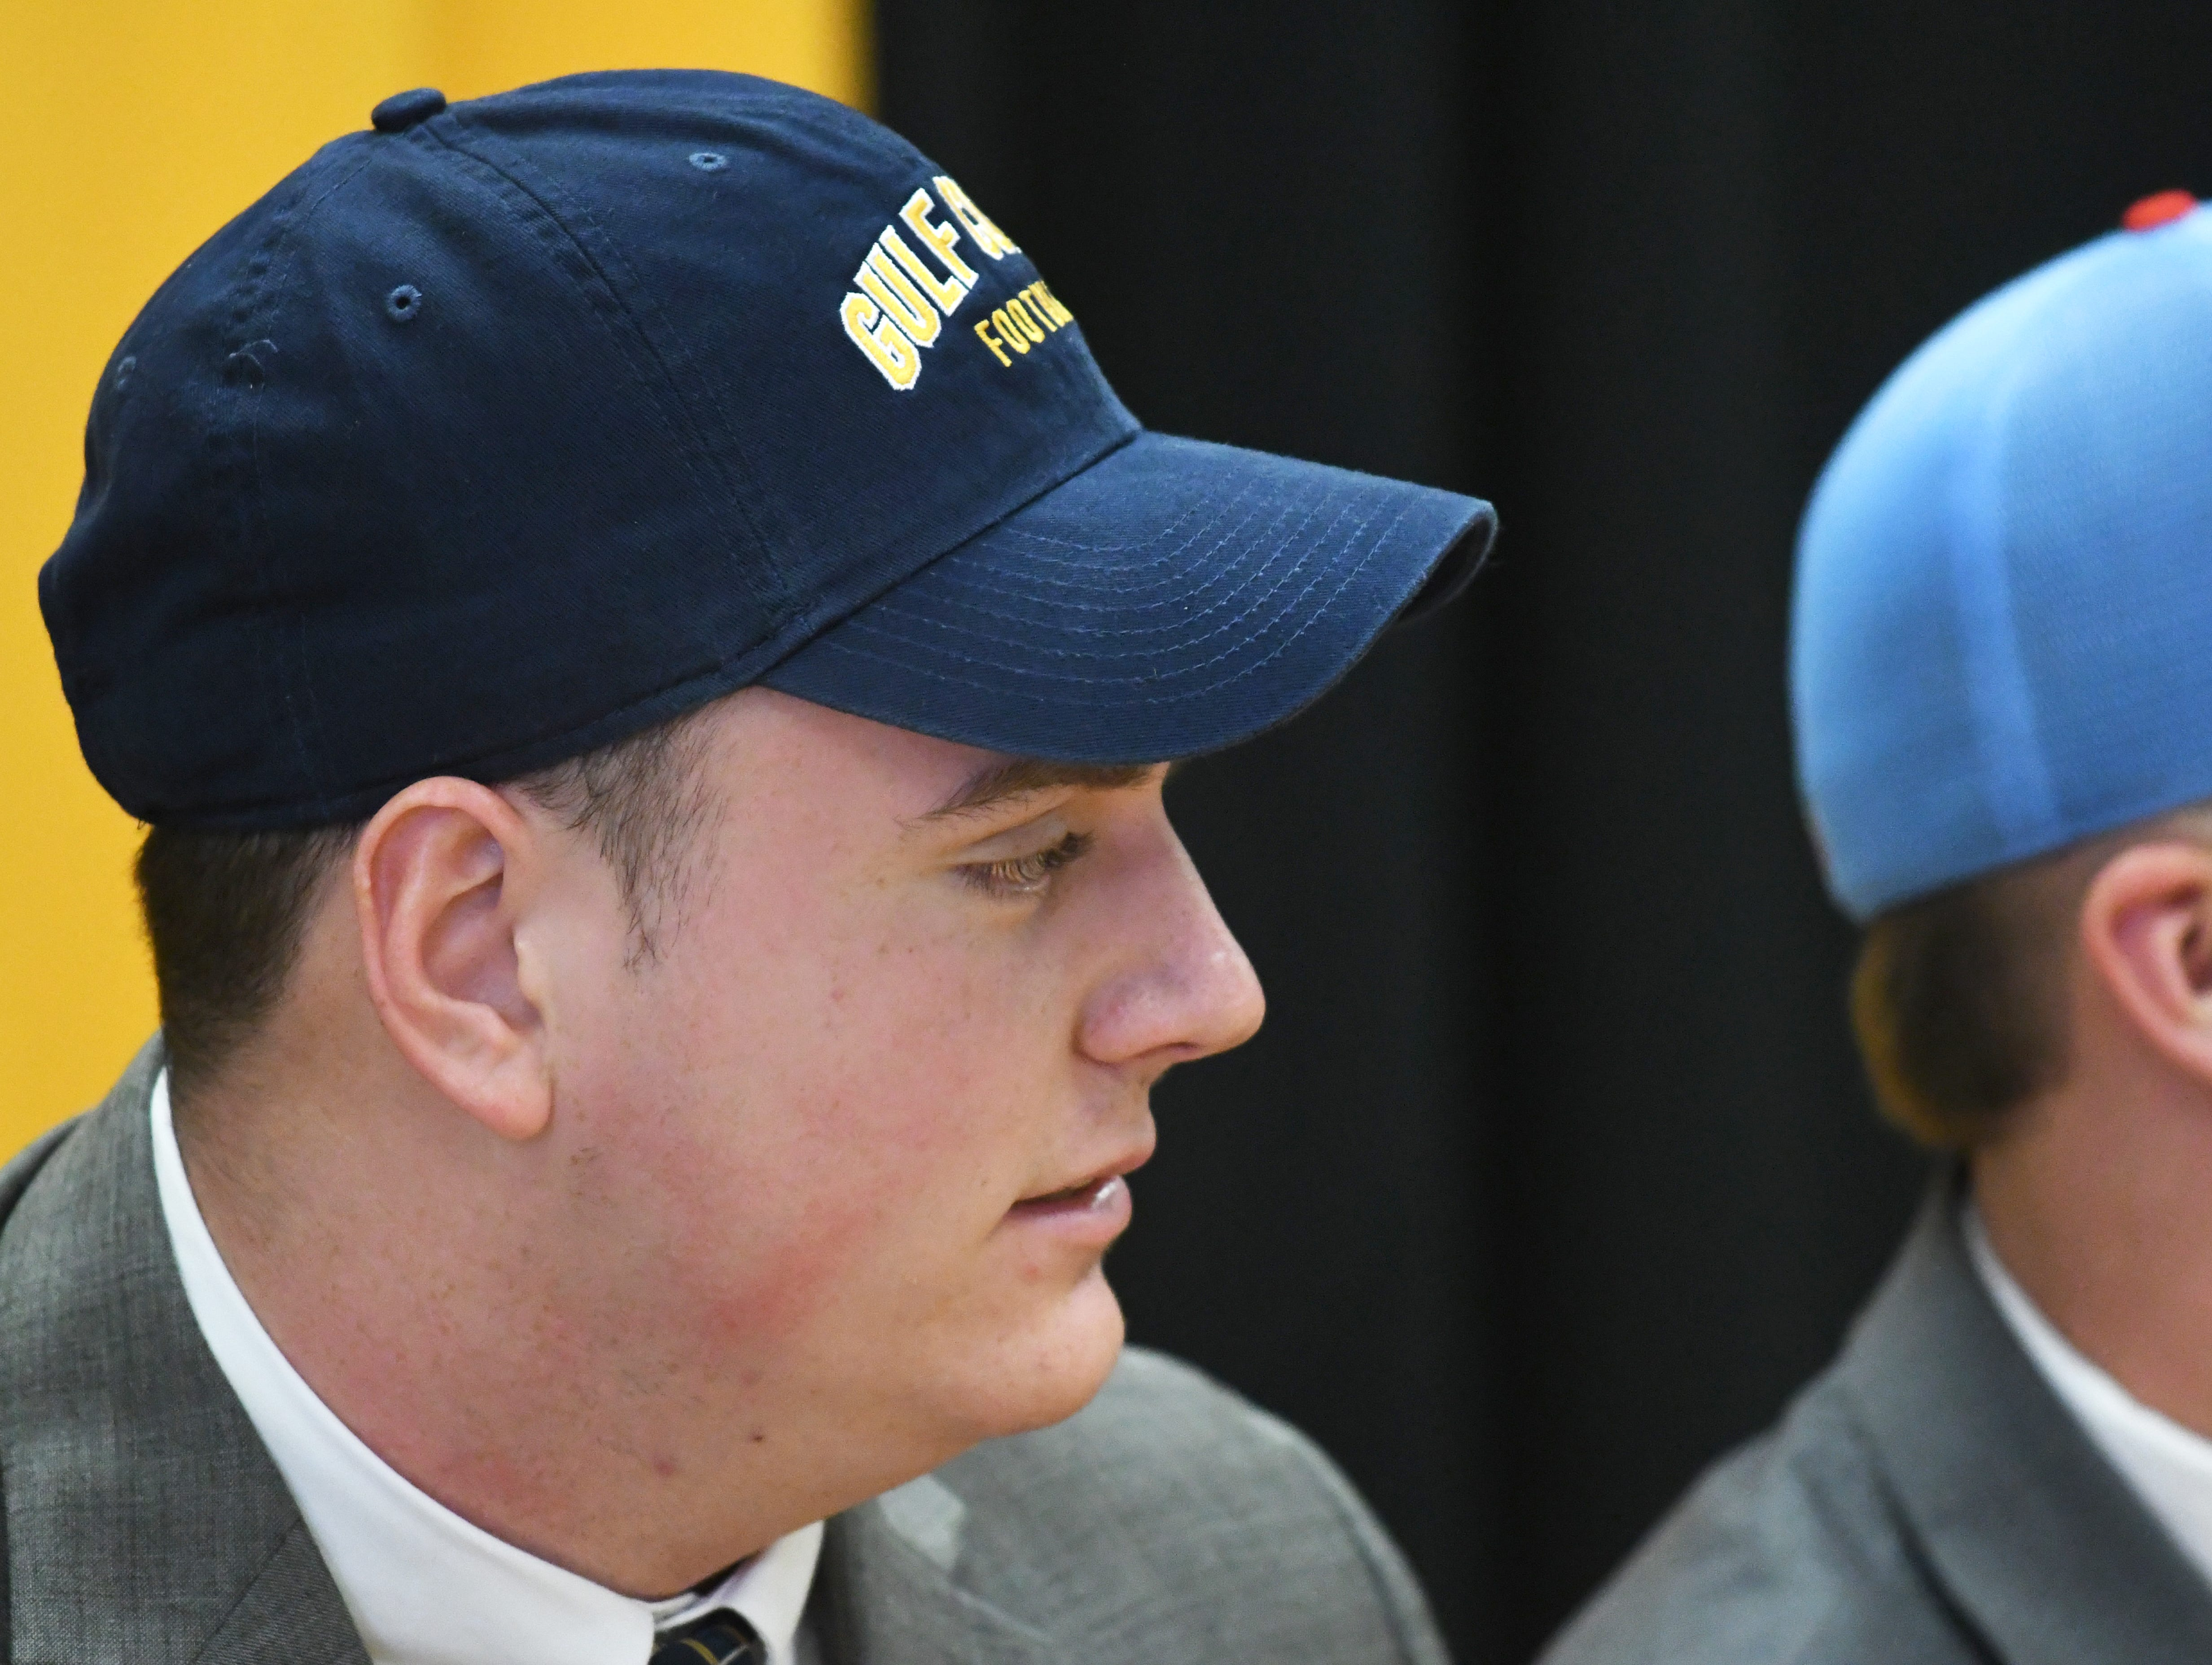 Oak Grove athlete Thomas Holford commits to Mississippi Gulf Coast Community College during National Signing Day in Hattiesburg on Wednesday, February 6, 2019.